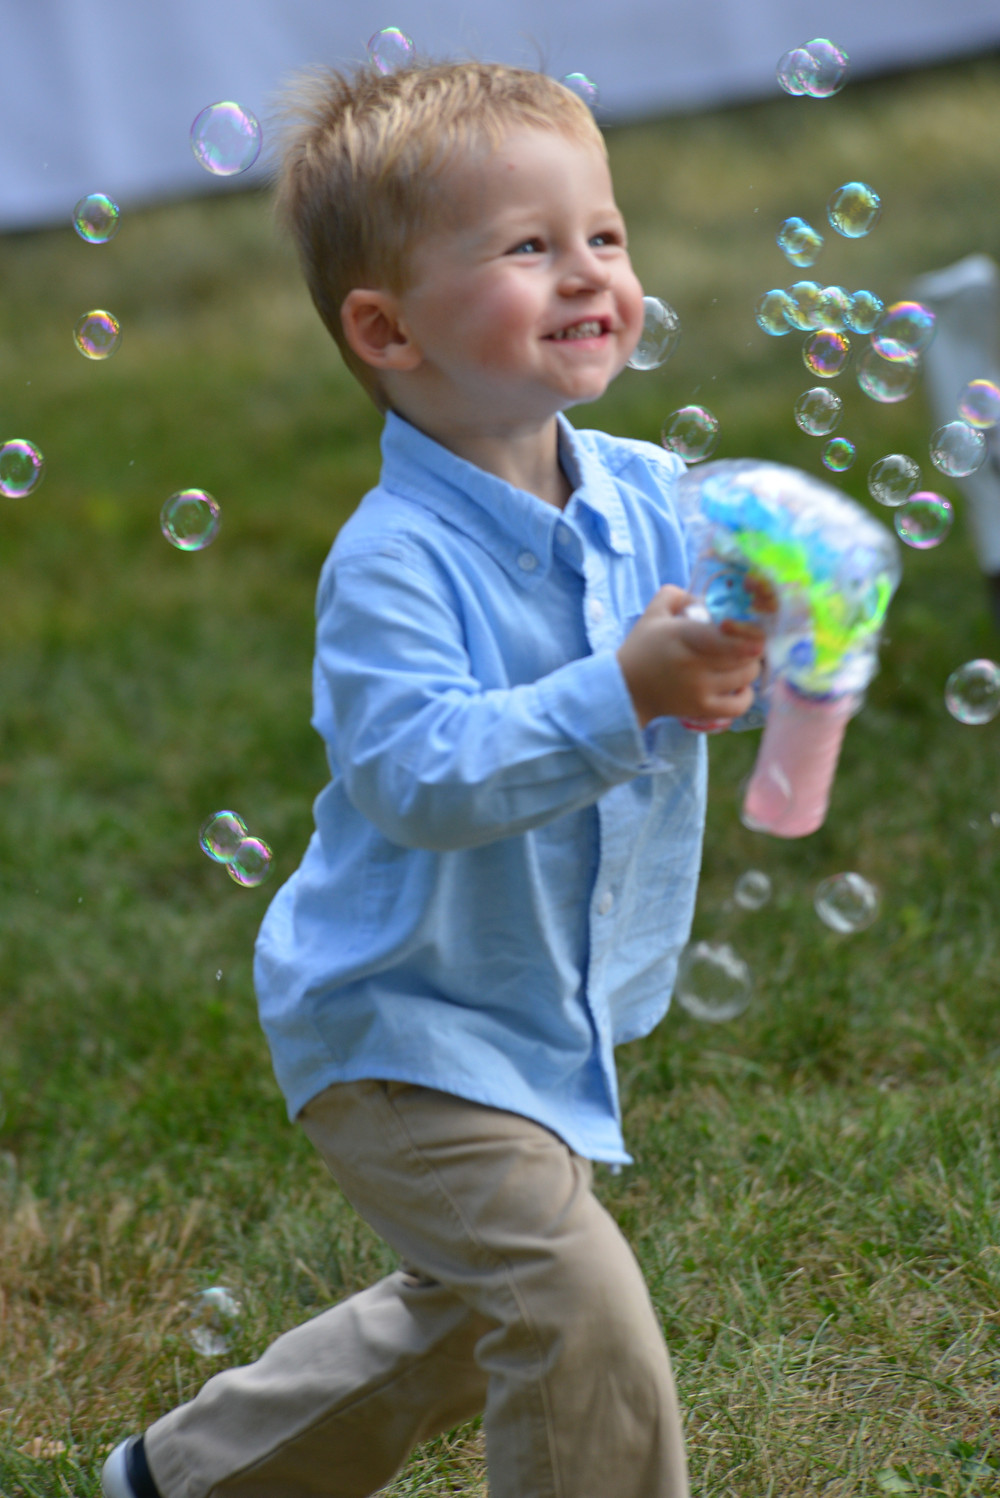 A young boy enjoys playing with a bubble maker at a wedding reception